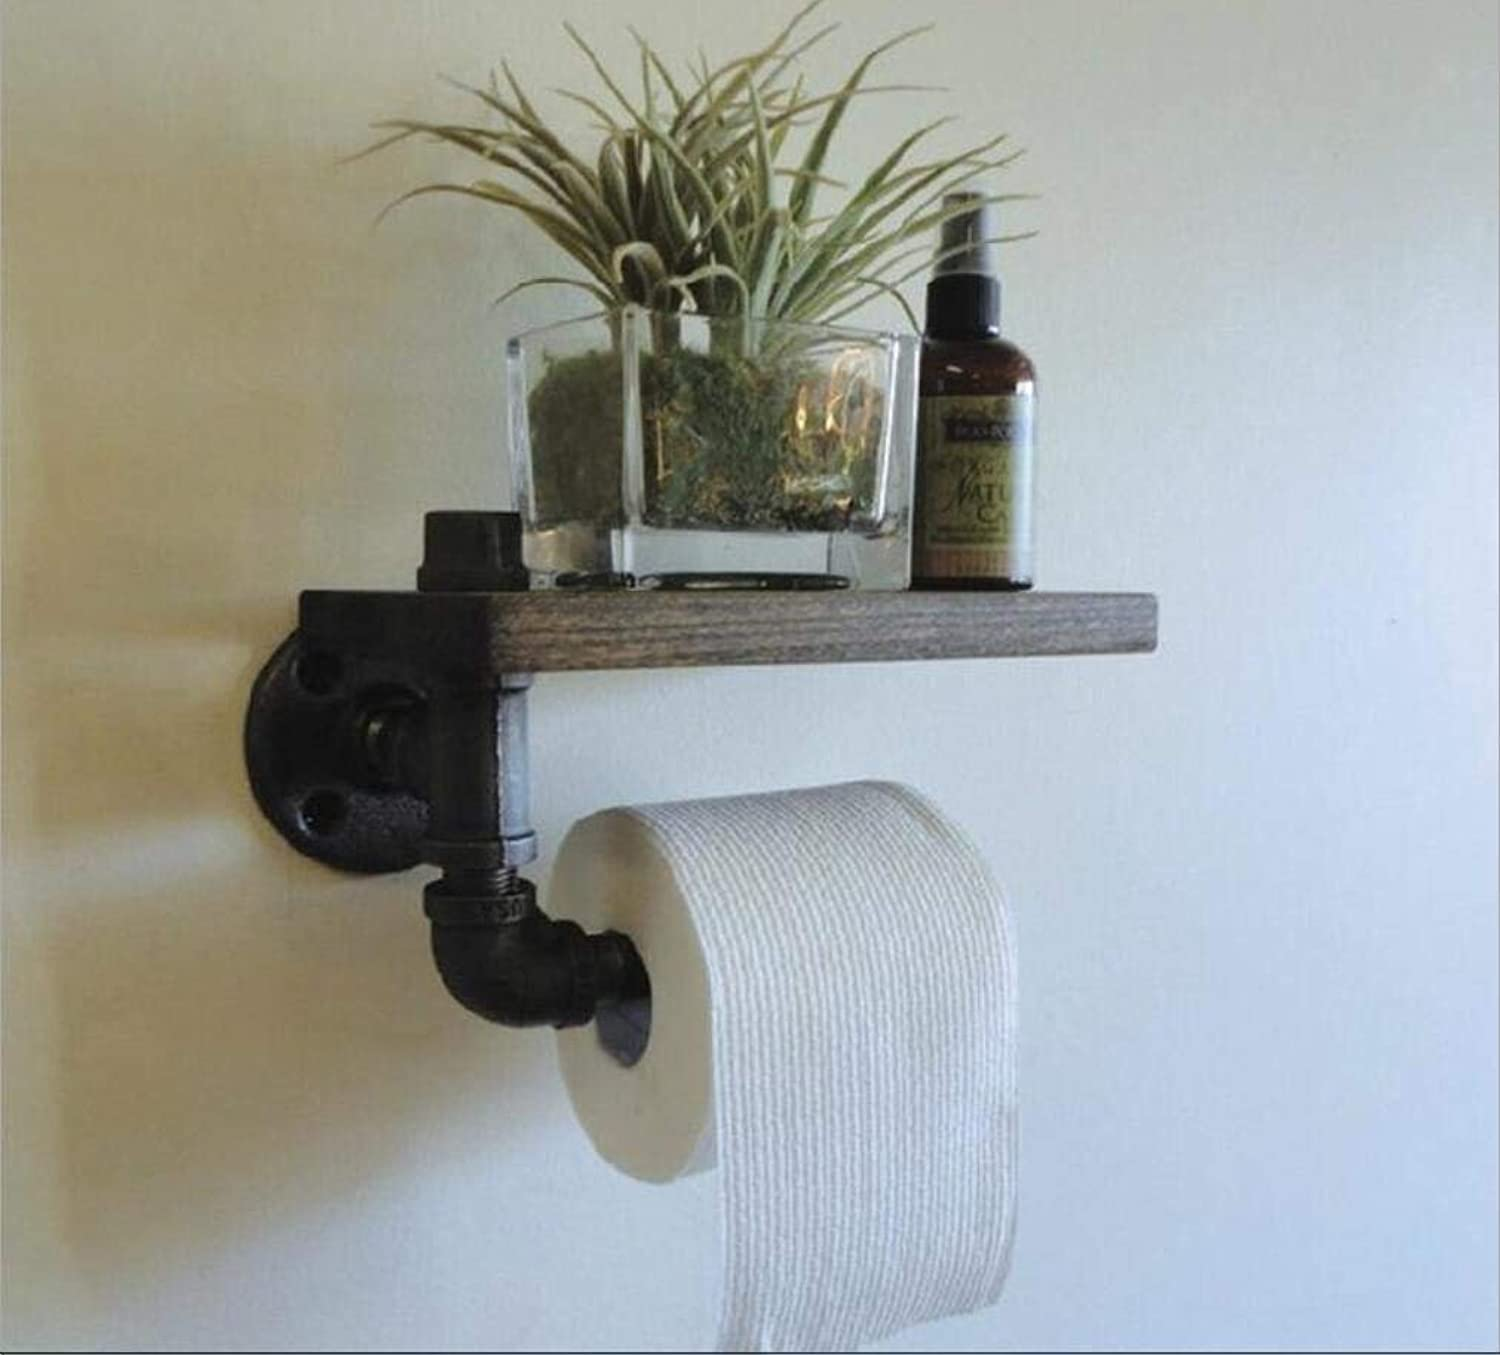 Accessories for Bathroom American Retro Wooden Bookshelf Iron Bathroom Dry-Towels Batteries Home The Display Framework The Toilet Paper,to Something False Antique Furniture